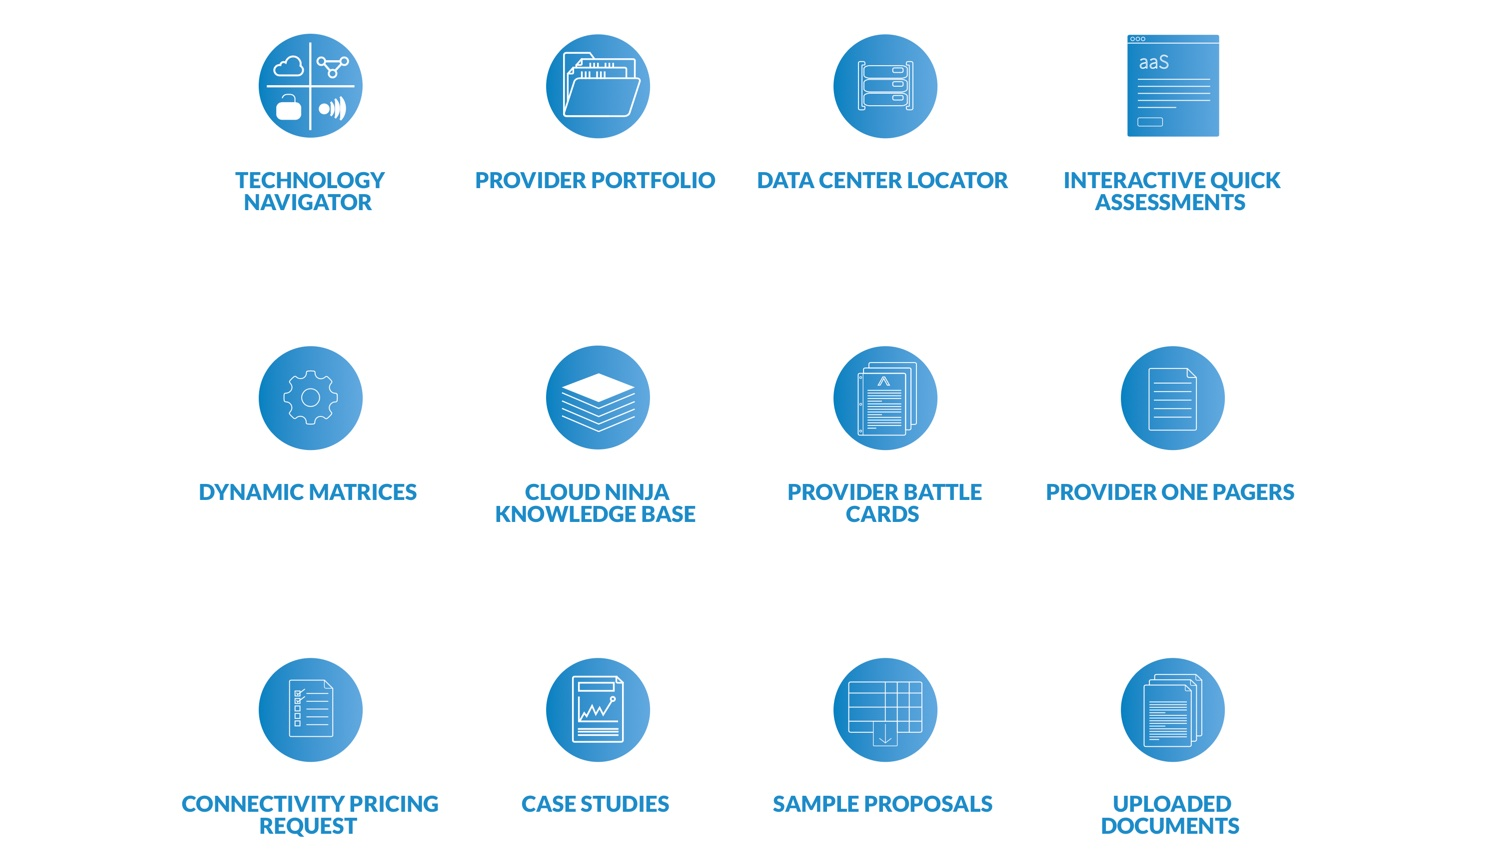 SD WAN Provider Comparison and Selection